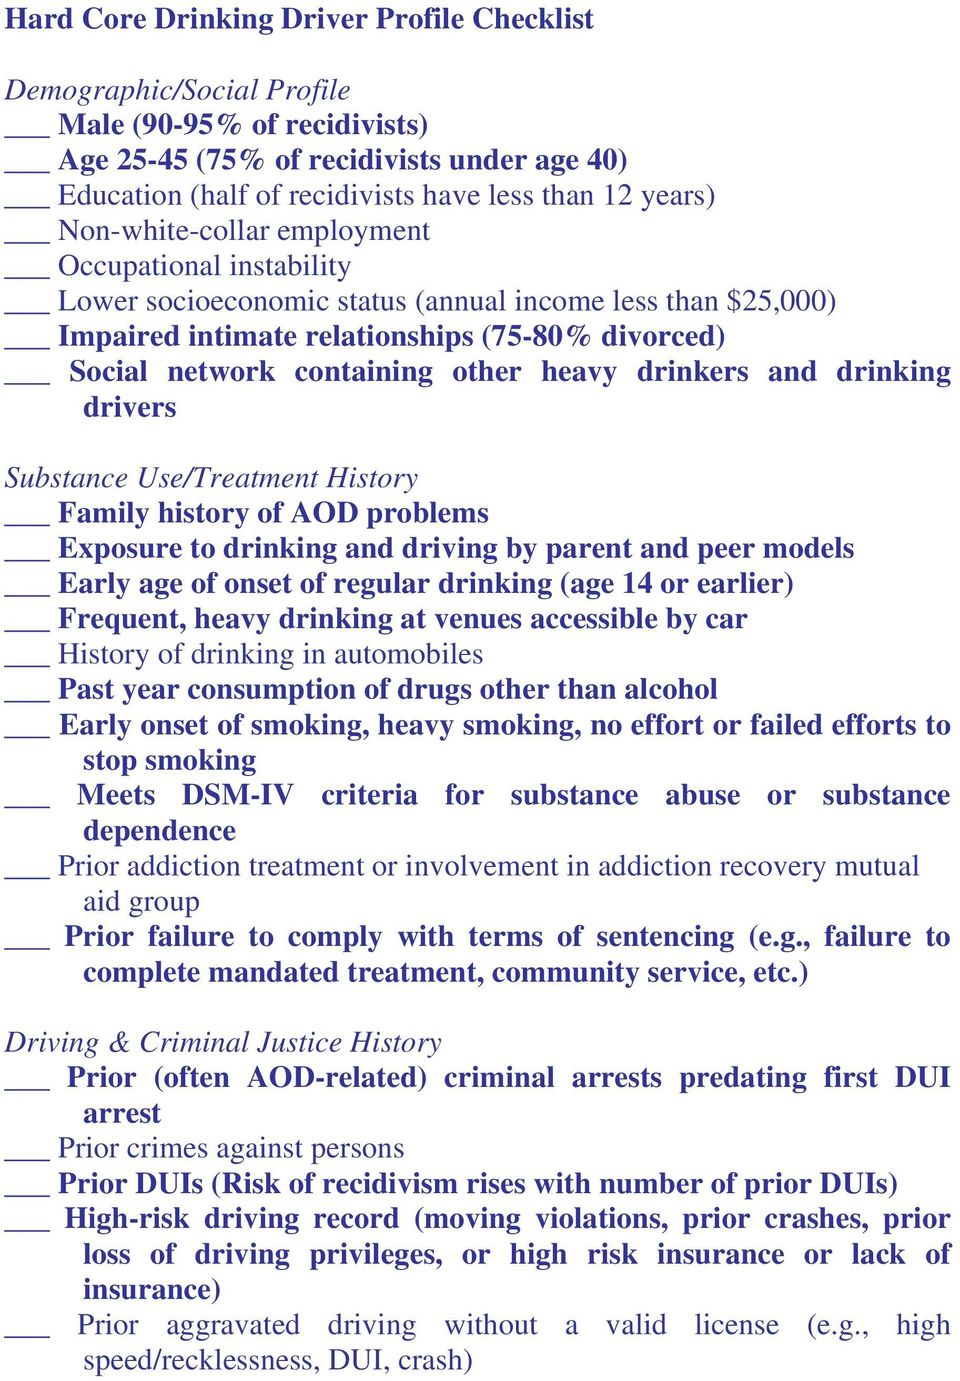 heavy drinkers and drinking drivers Substance Use/Treatment History Family history of AOD problems Exposure to drinking and driving by parent and peer models Early age of onset of regular drinking